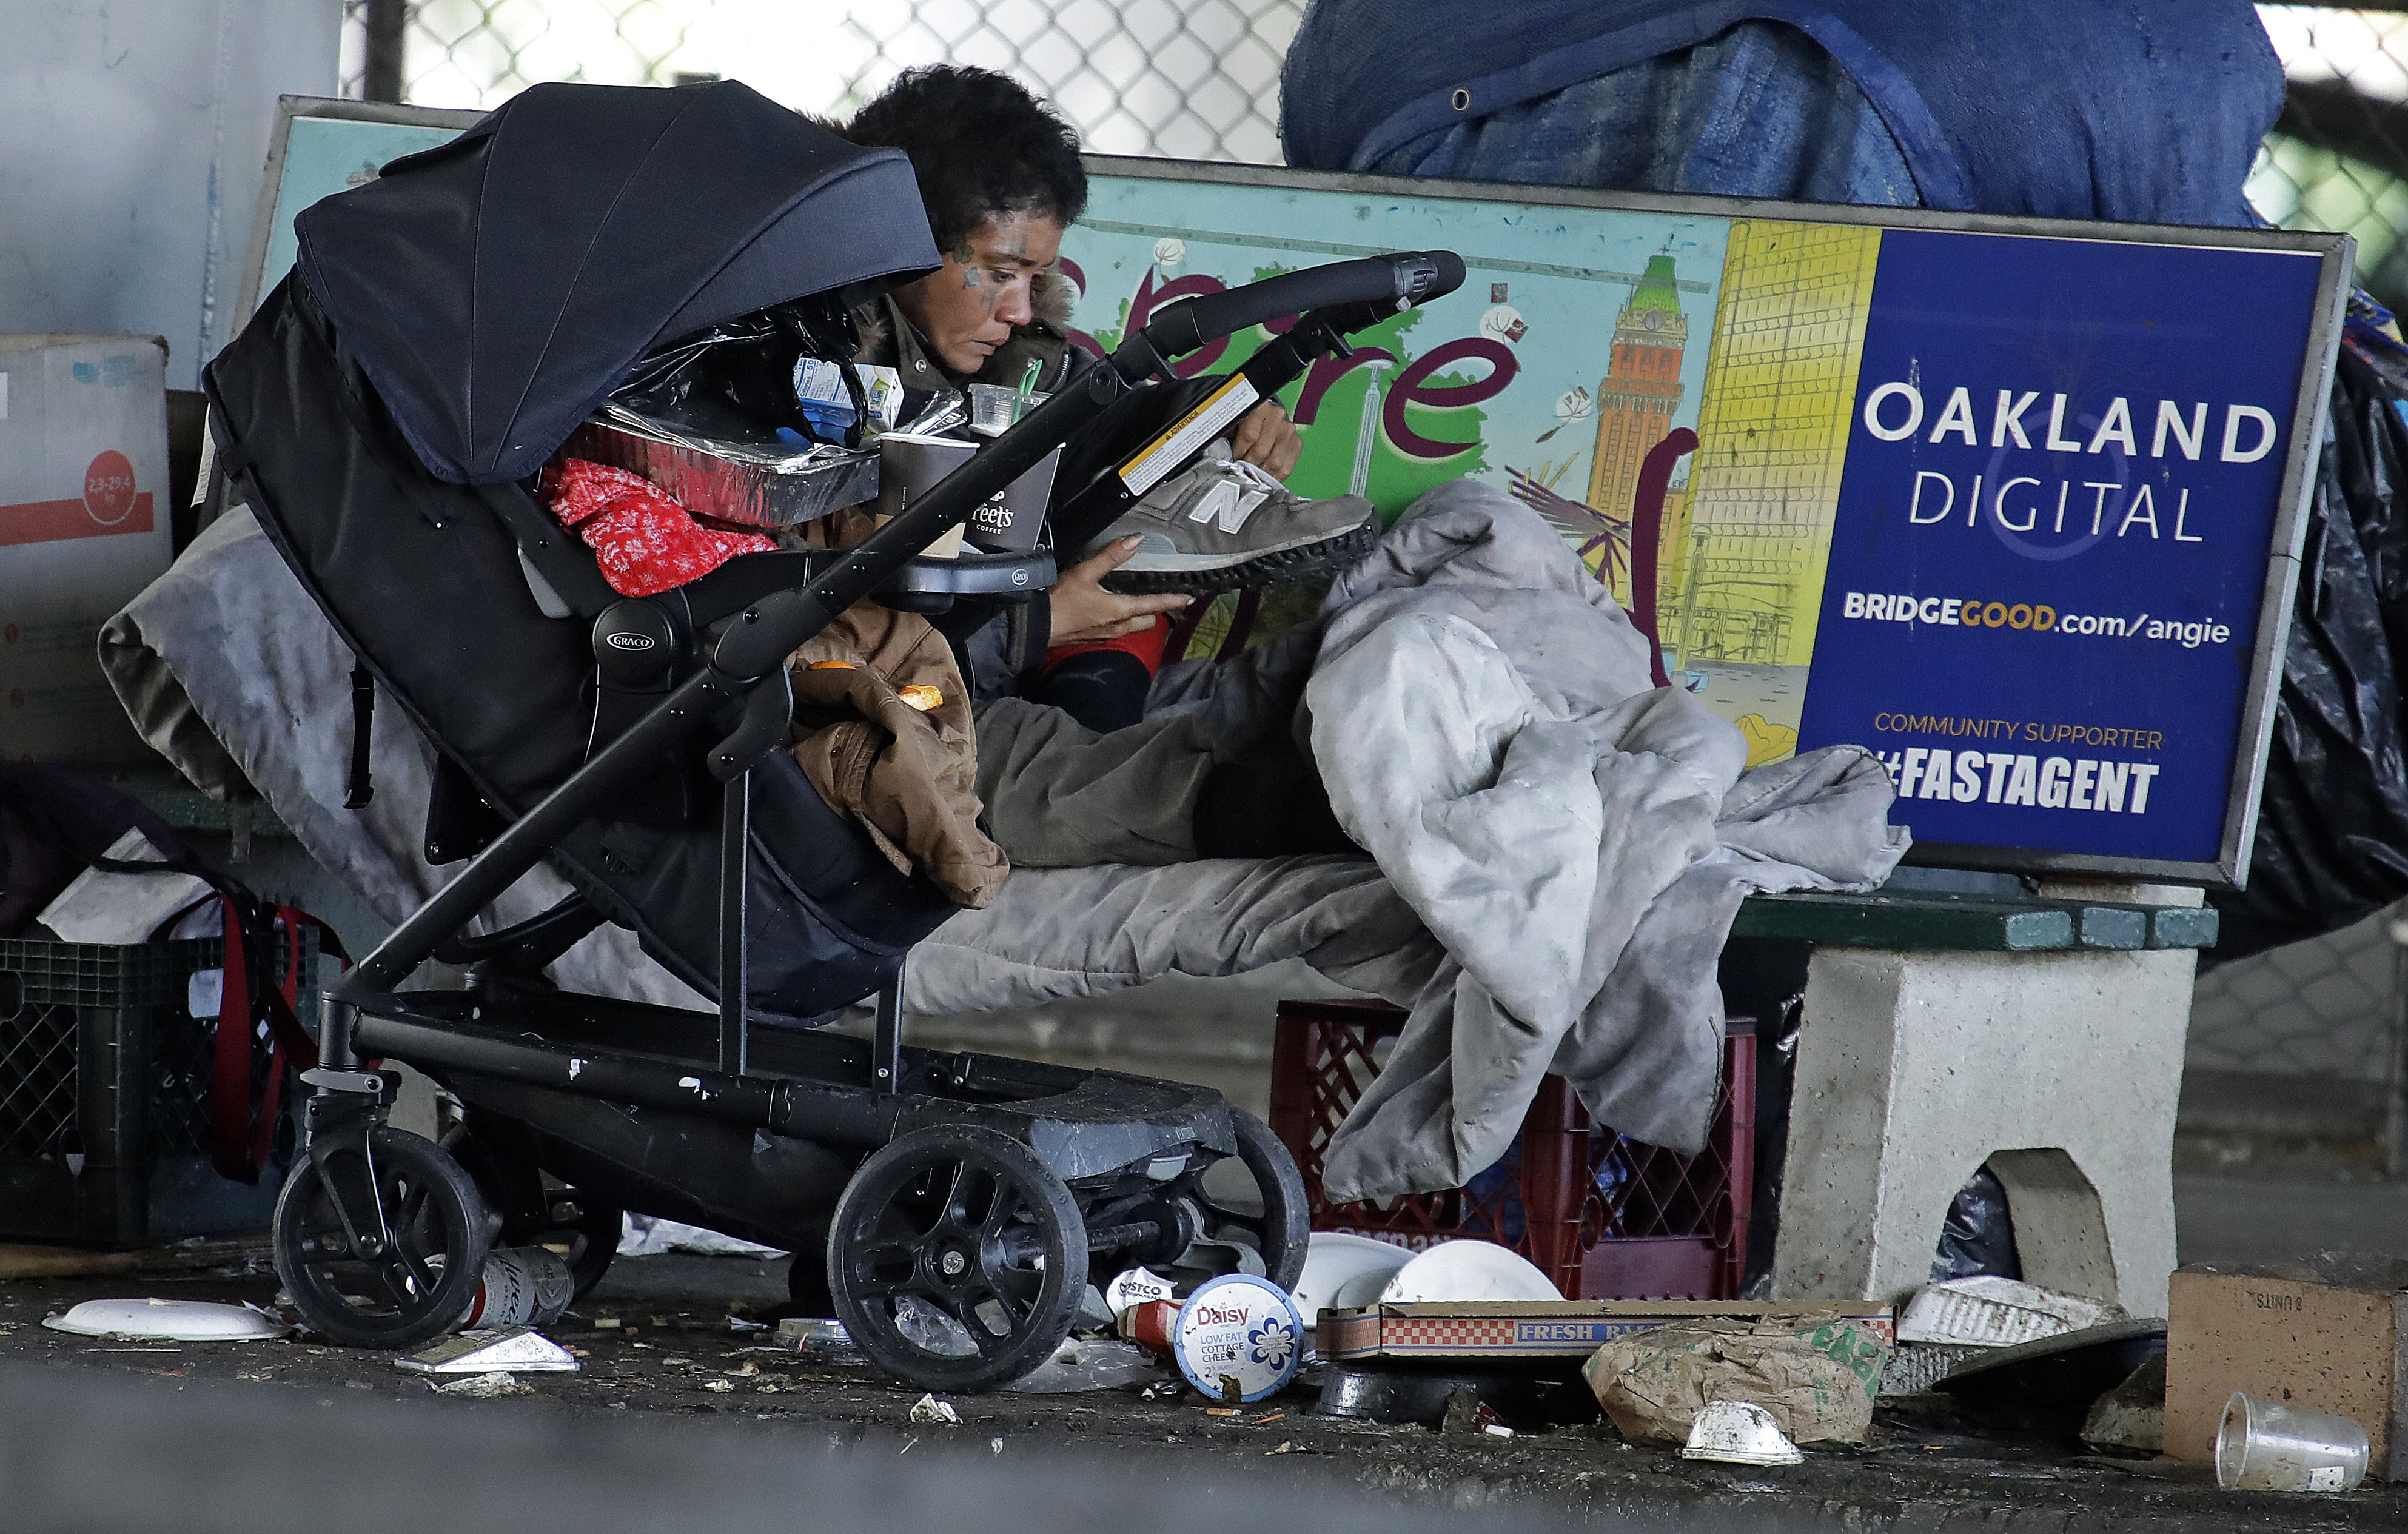 60,000 homeless could get virus, says California governor